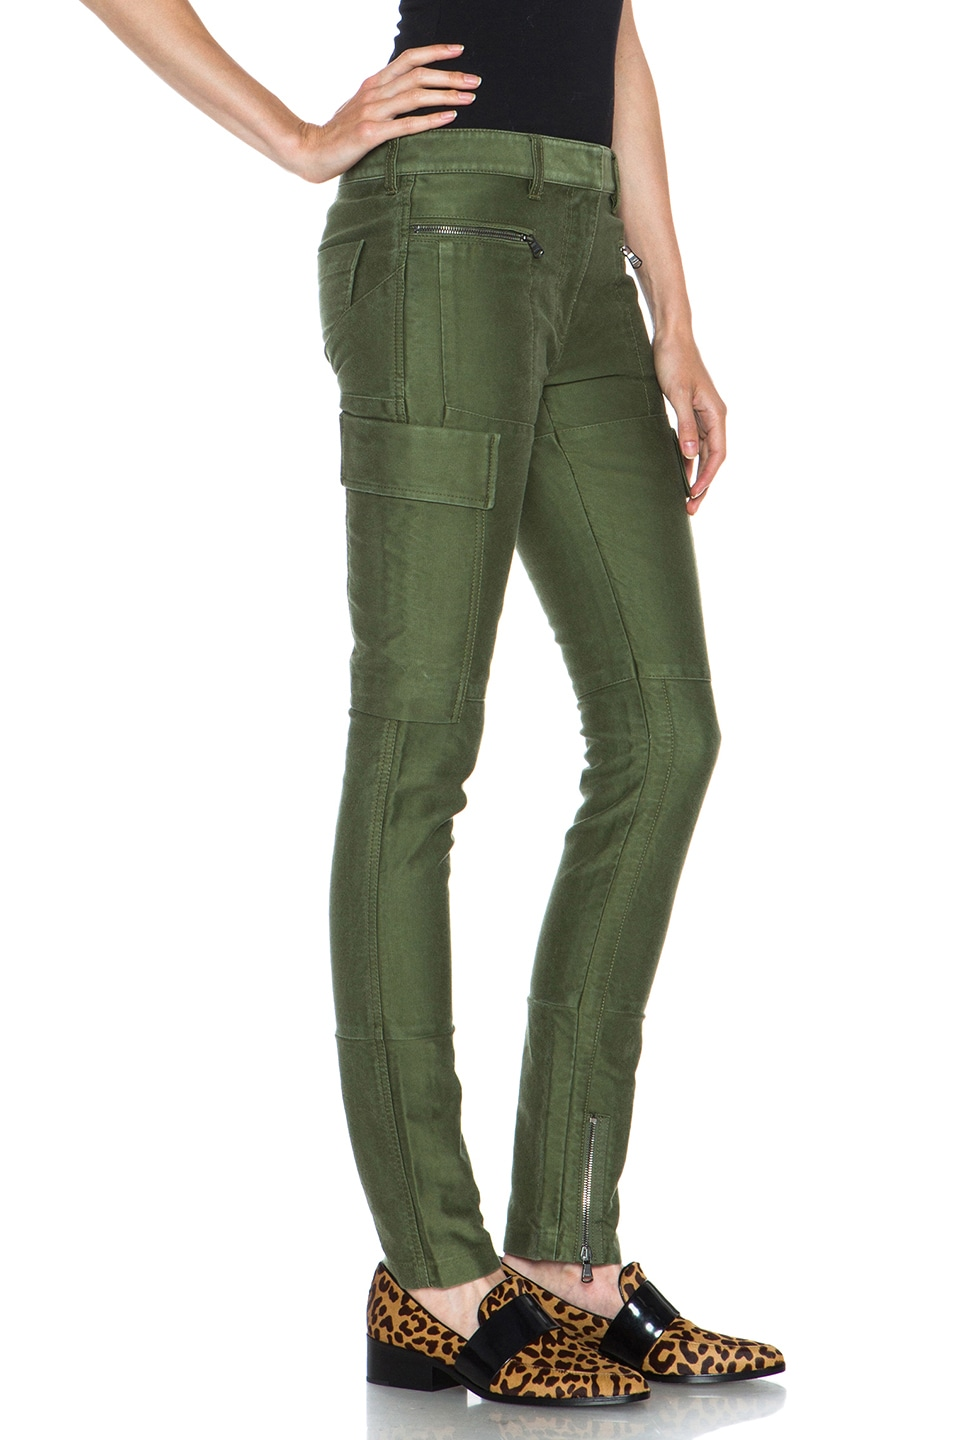 Image 3 of 3.1 phillip lim Skinny Cargo Cotton Pant in Army Green